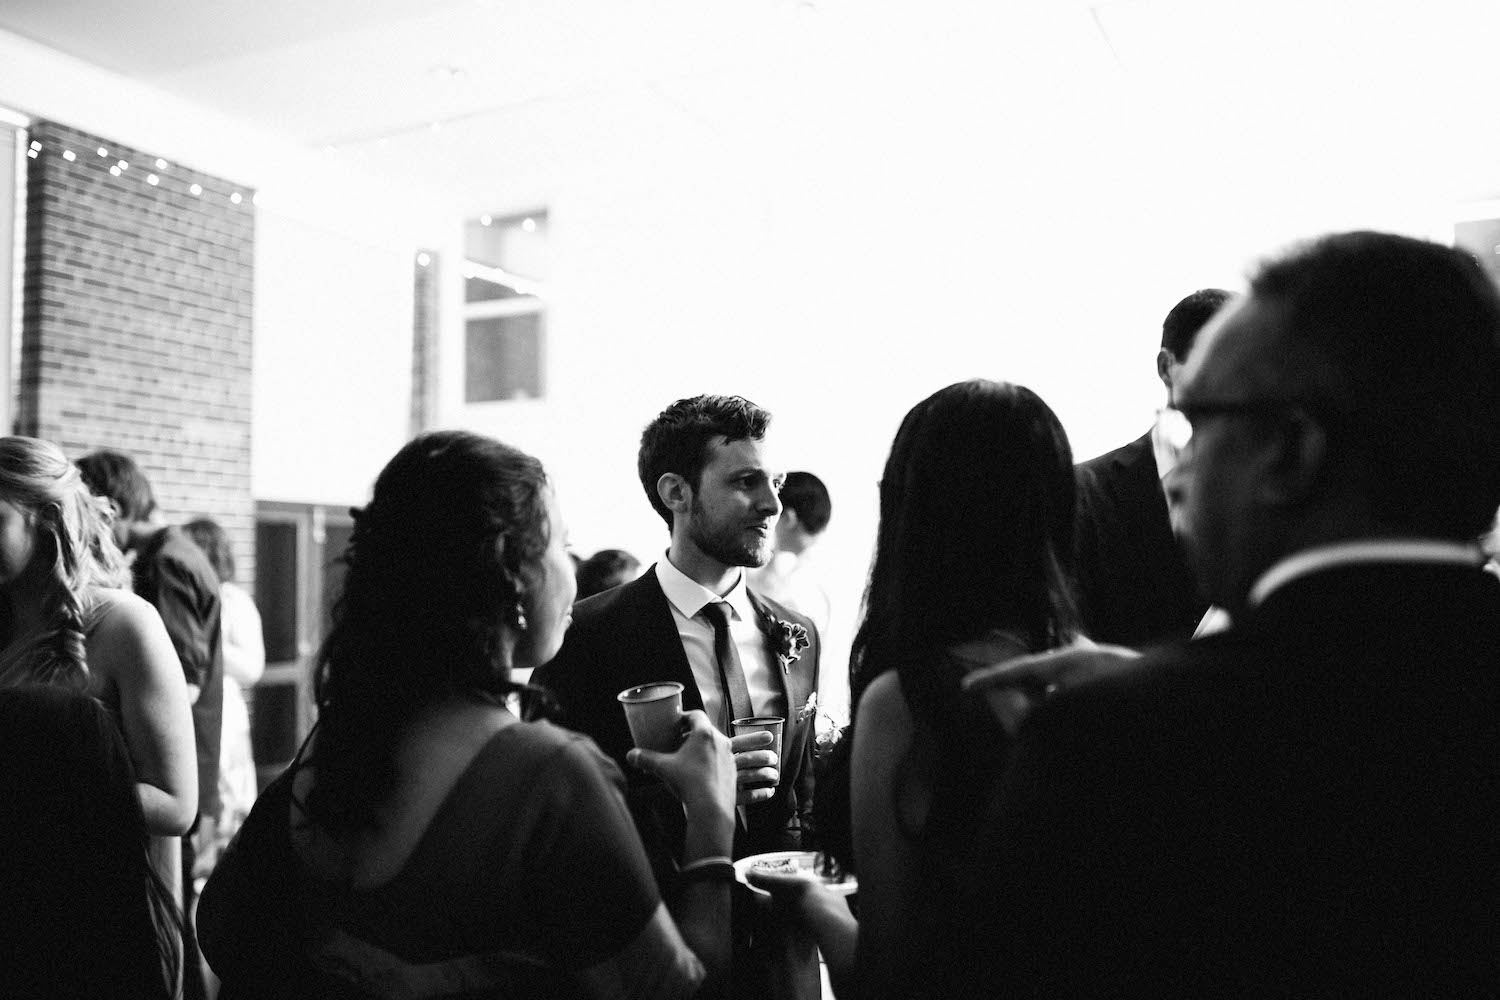 The groom chatting with guests after his Subiaco Wedding ceremony at St Matthew's Anglican Church.